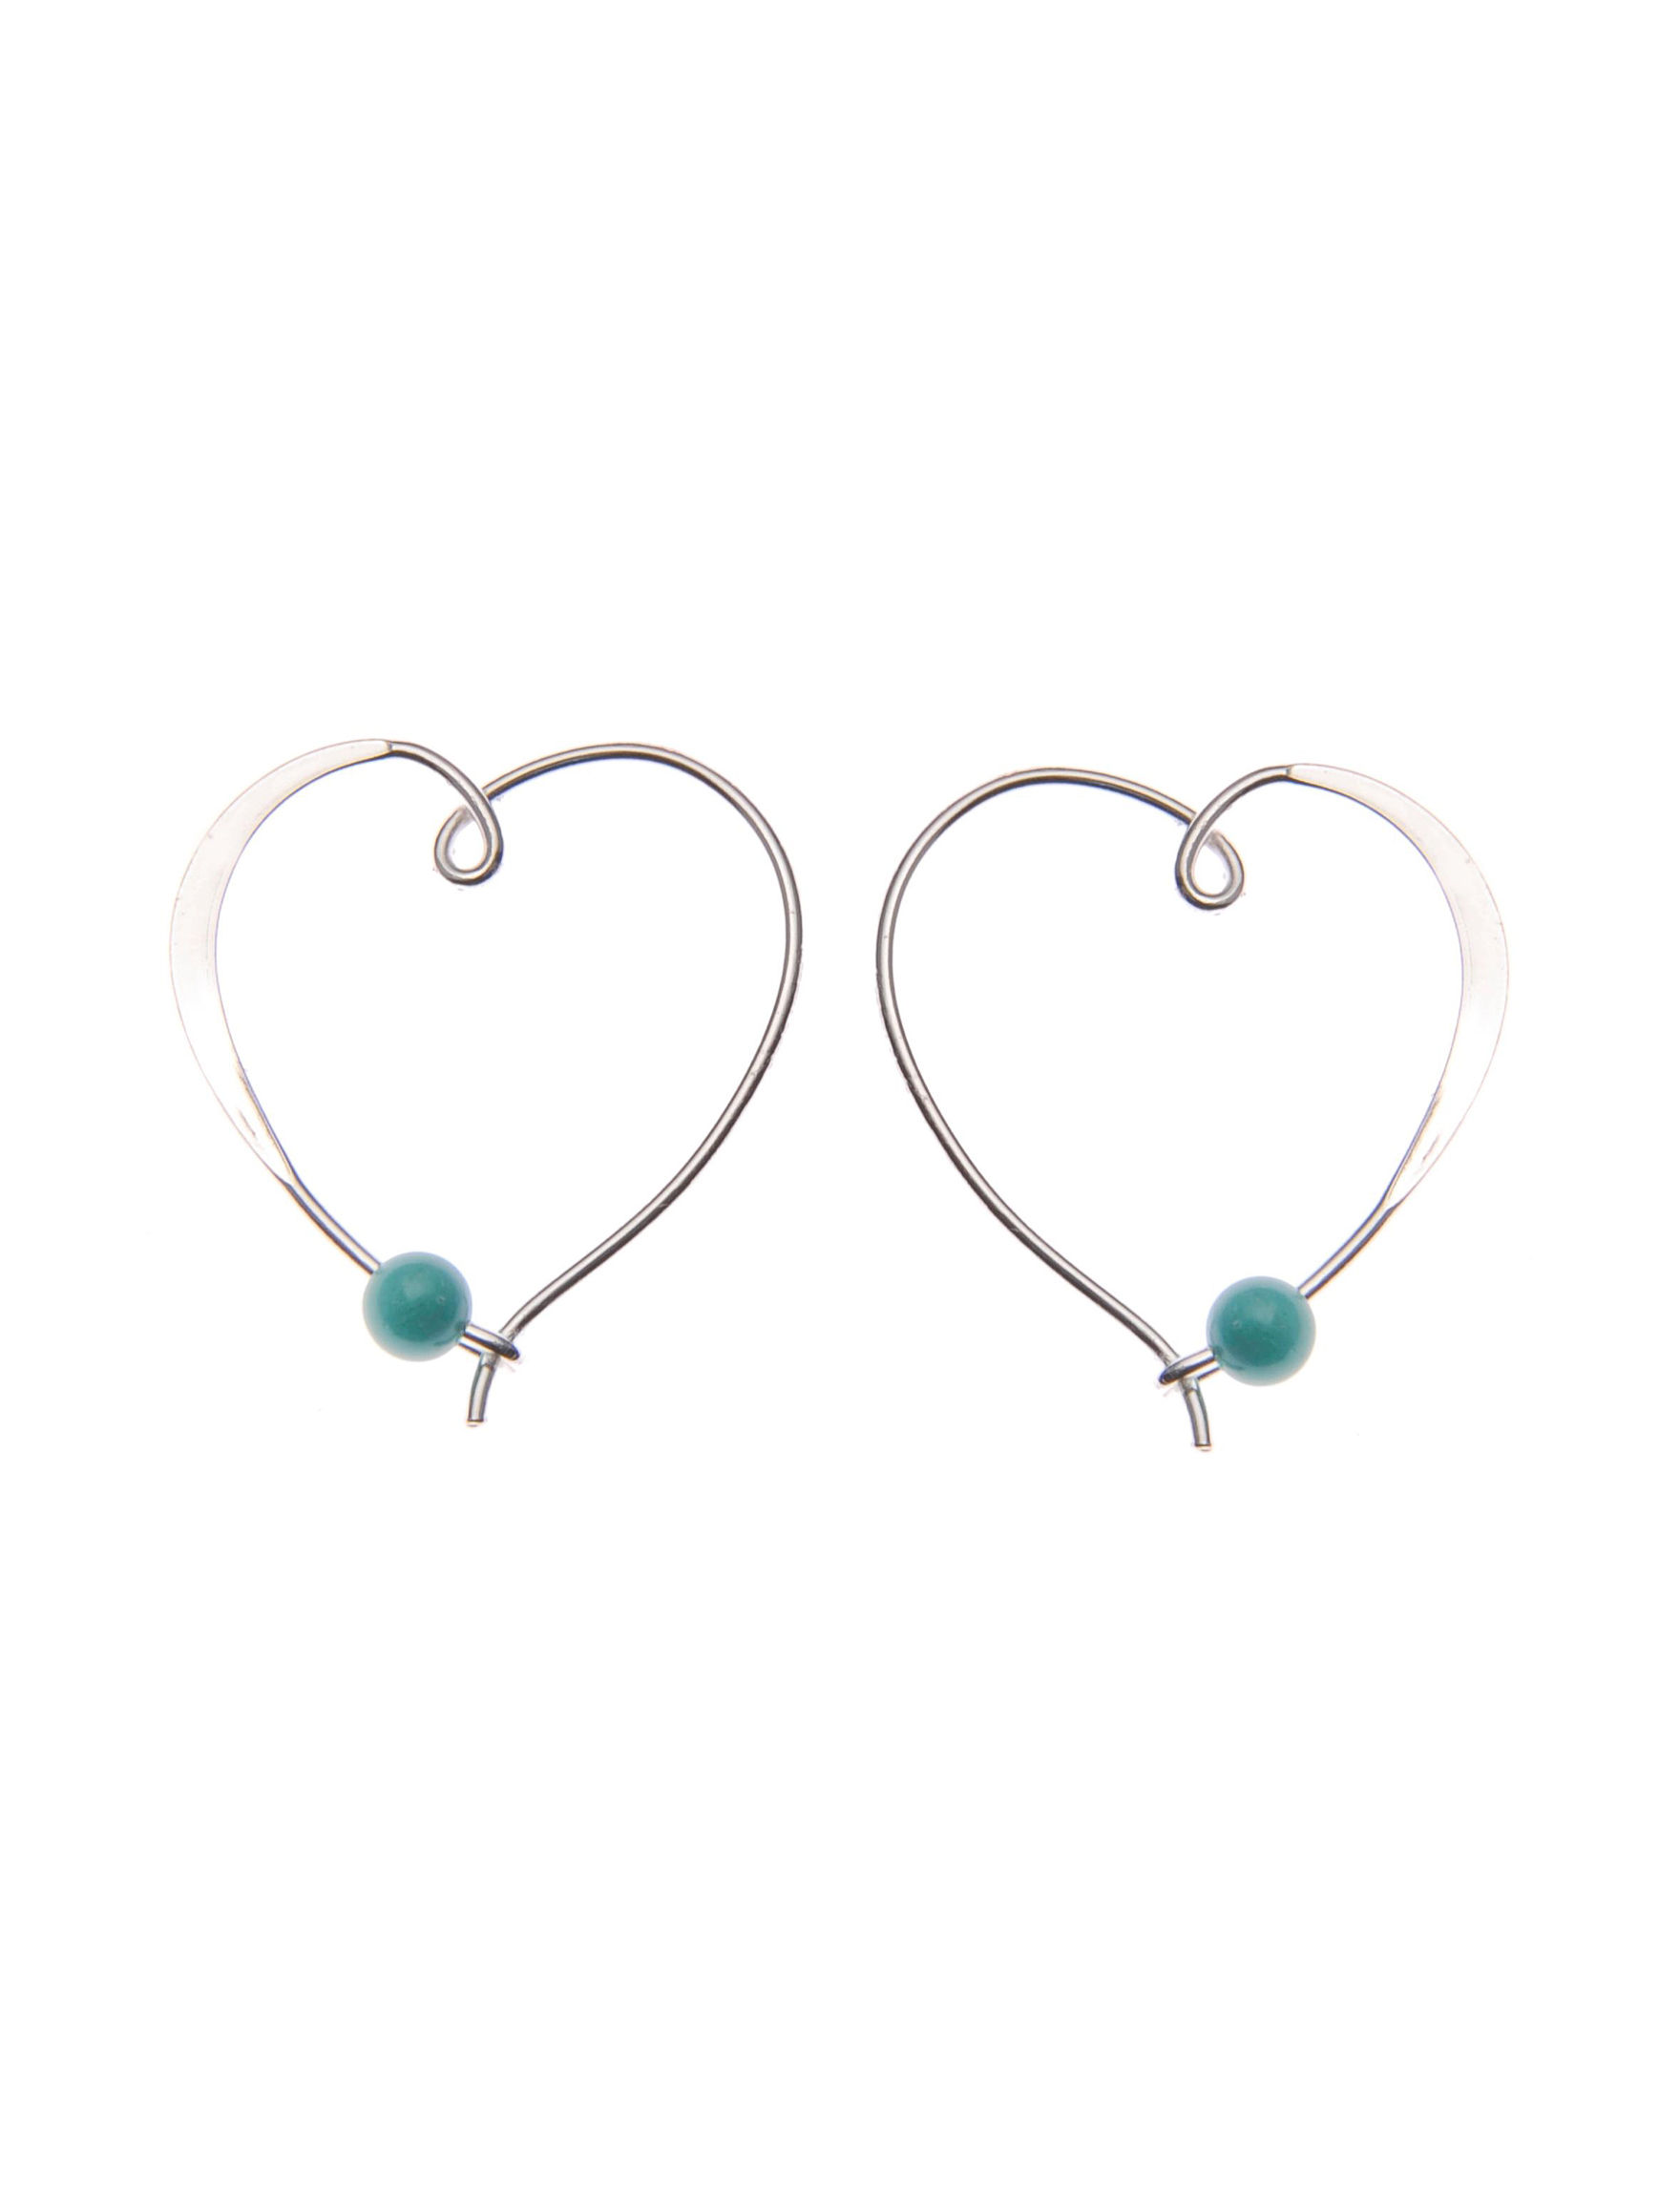 L & J White / Silver Hoops Earrings Fine Jewelry